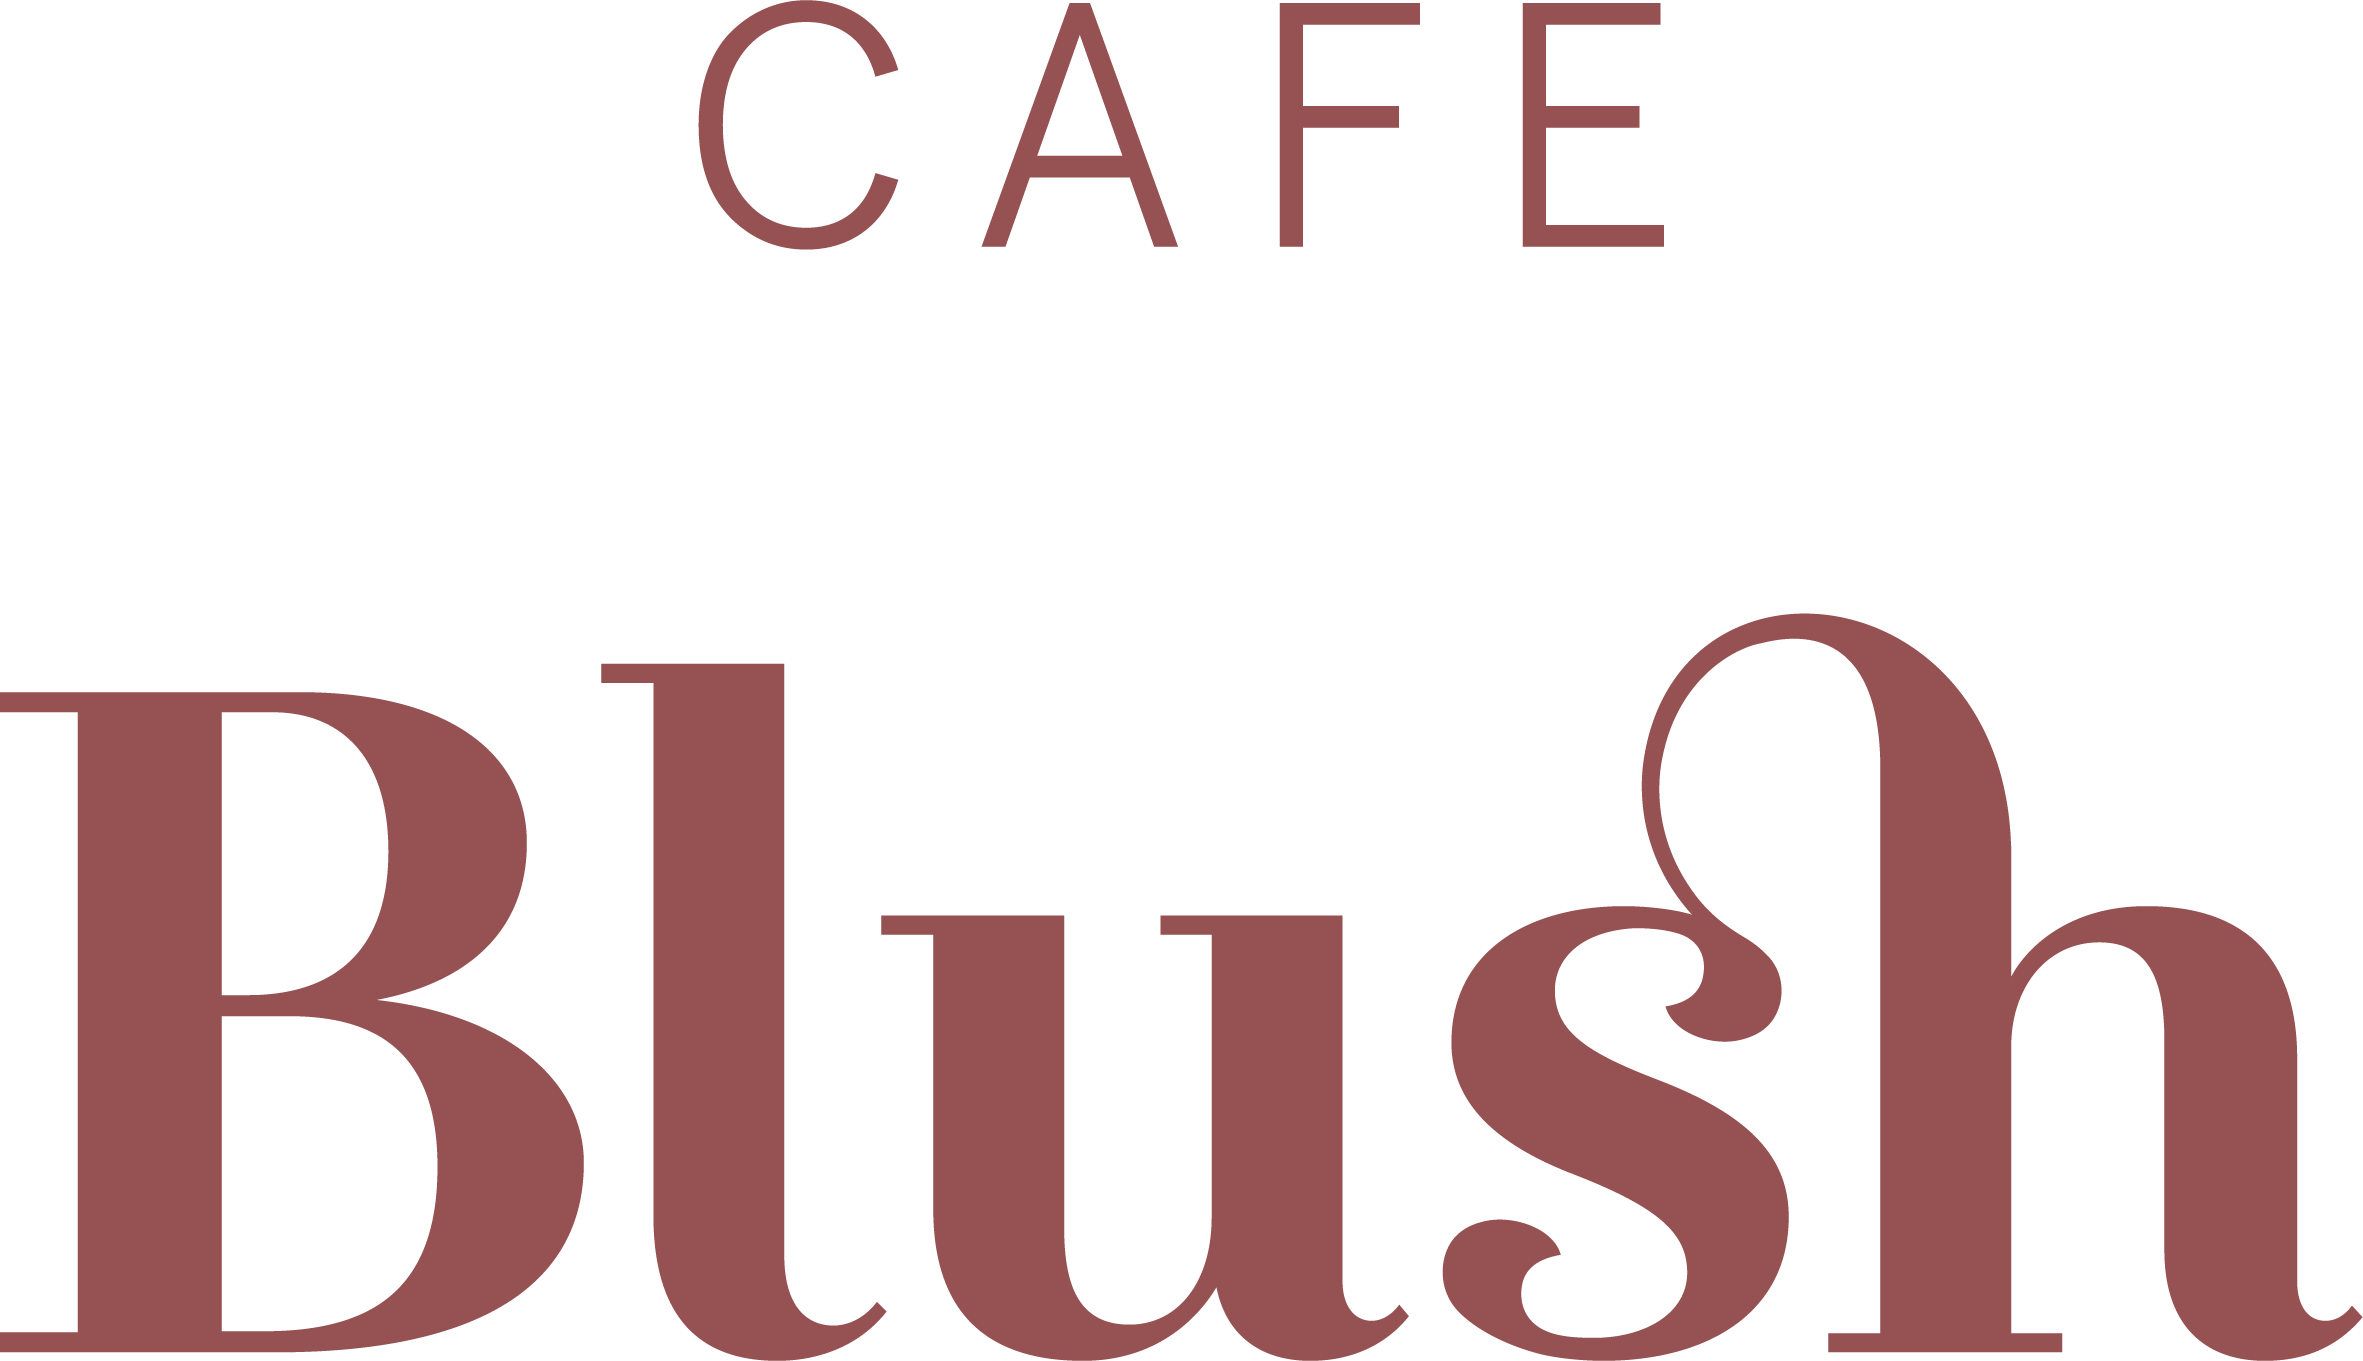 CafeBlush_Marsala_Logotype_Stacked.png